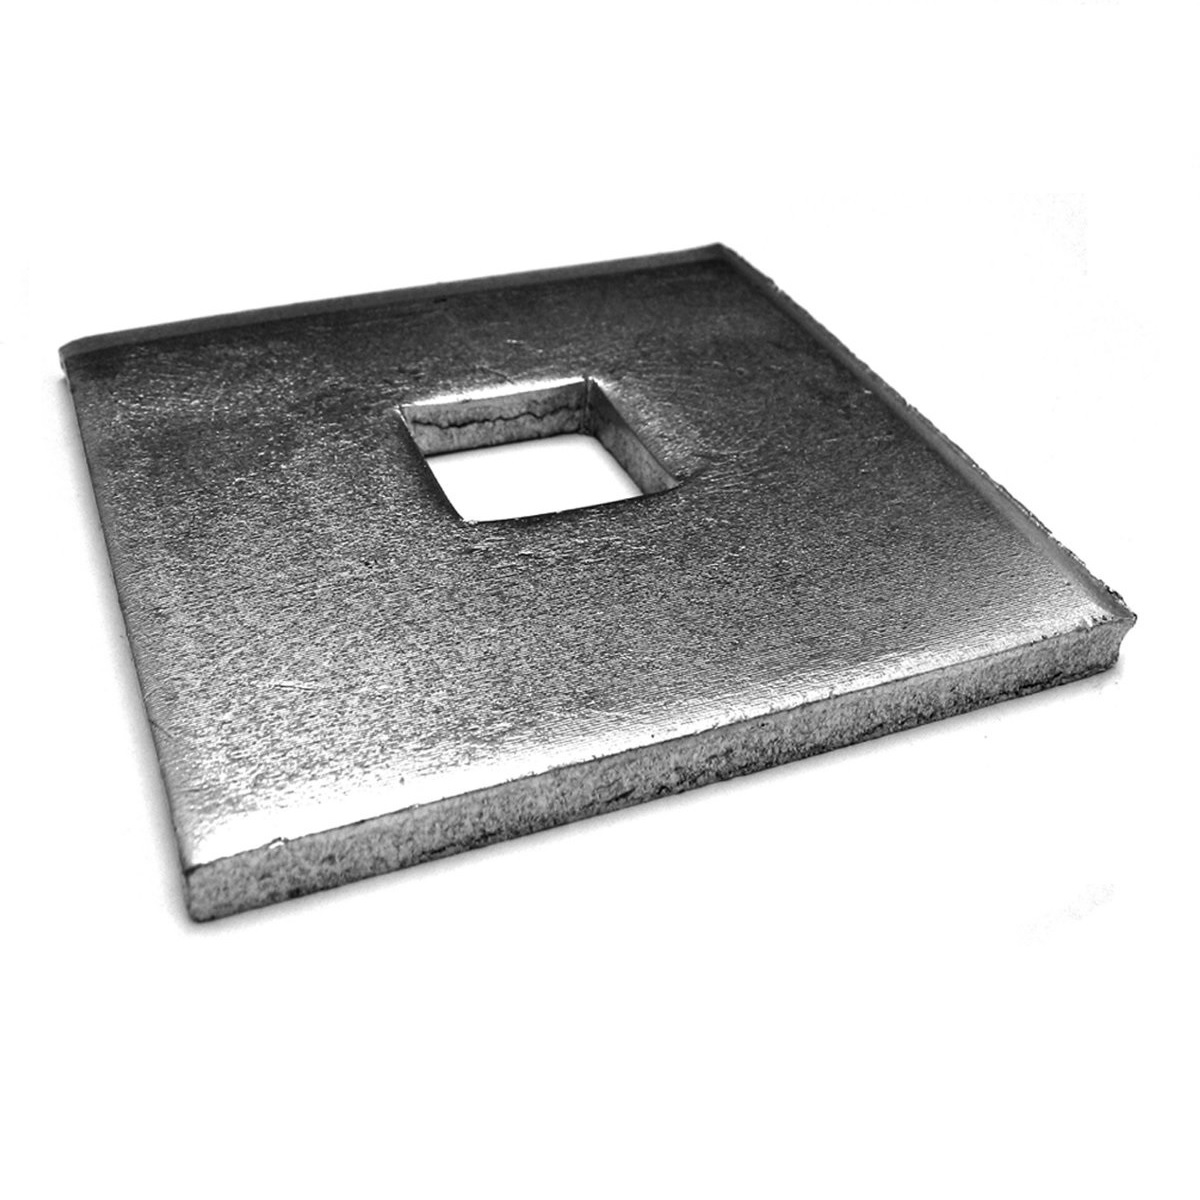 Square Hole Square Plate Washers - M20 x 100 x 10mm